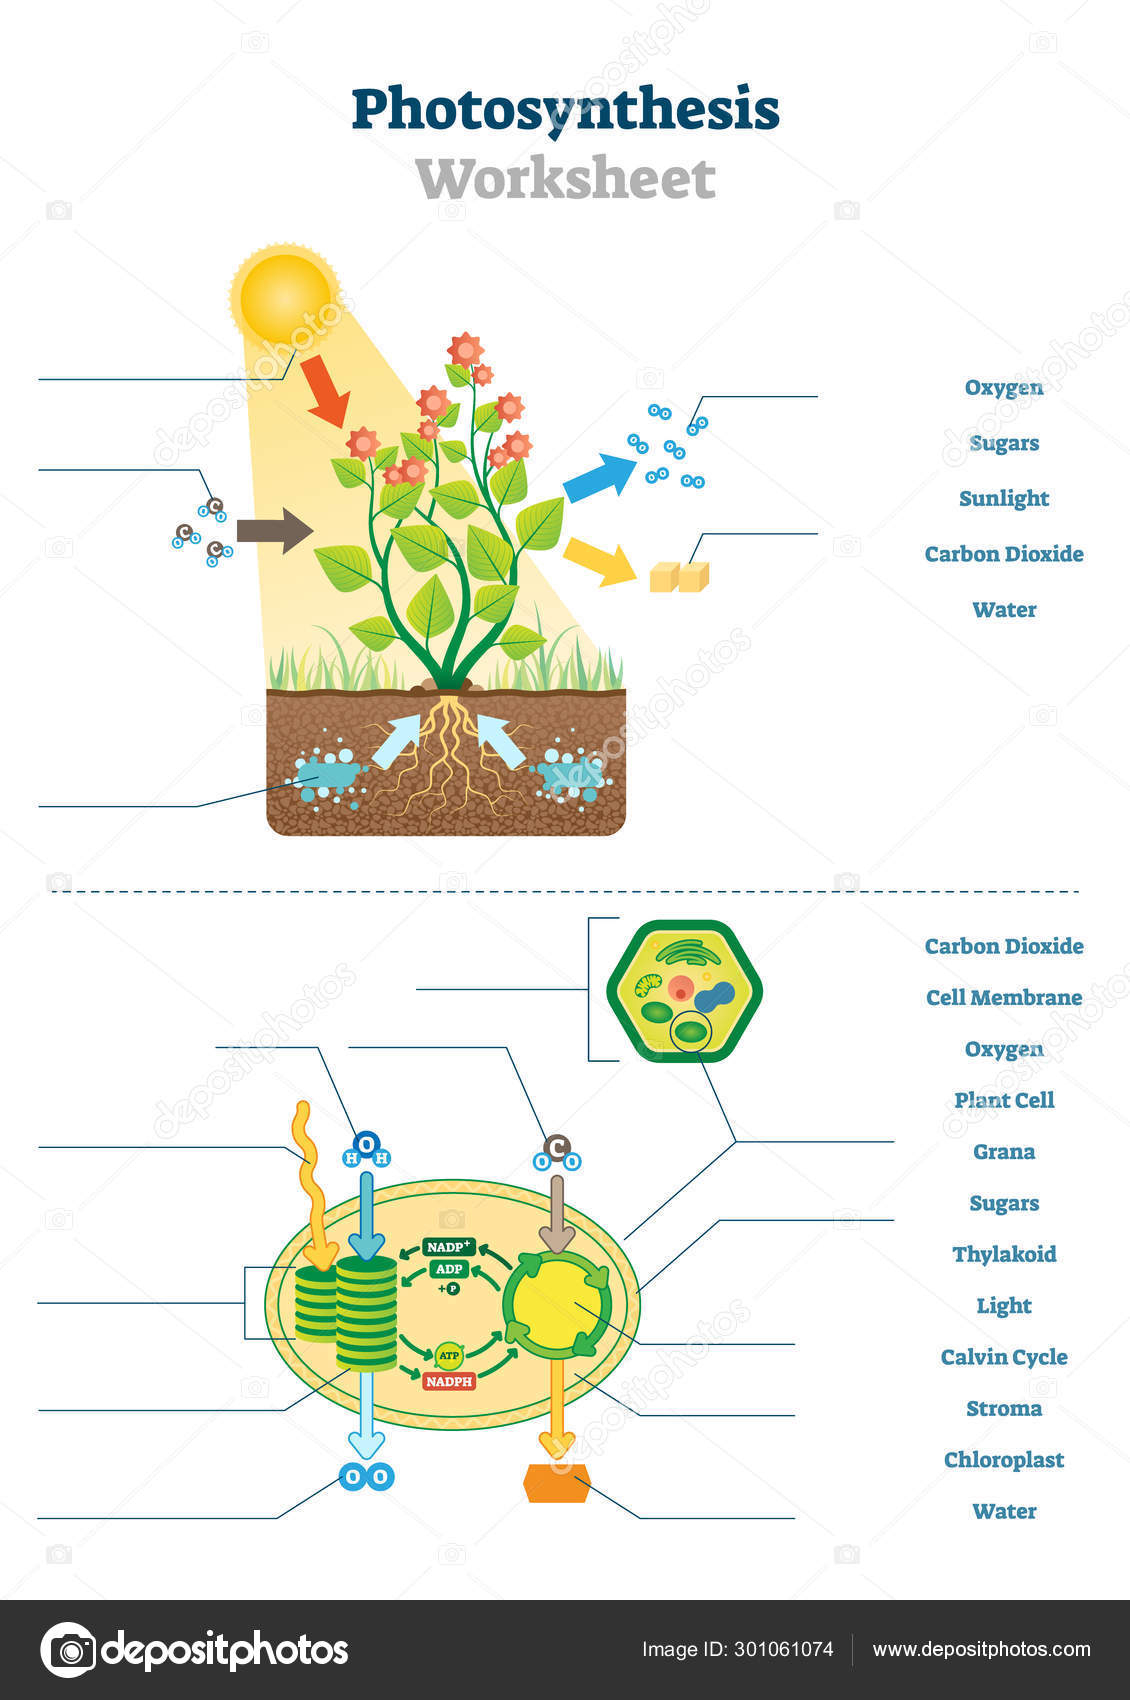 High School Biology Photosynthesis Worksheet